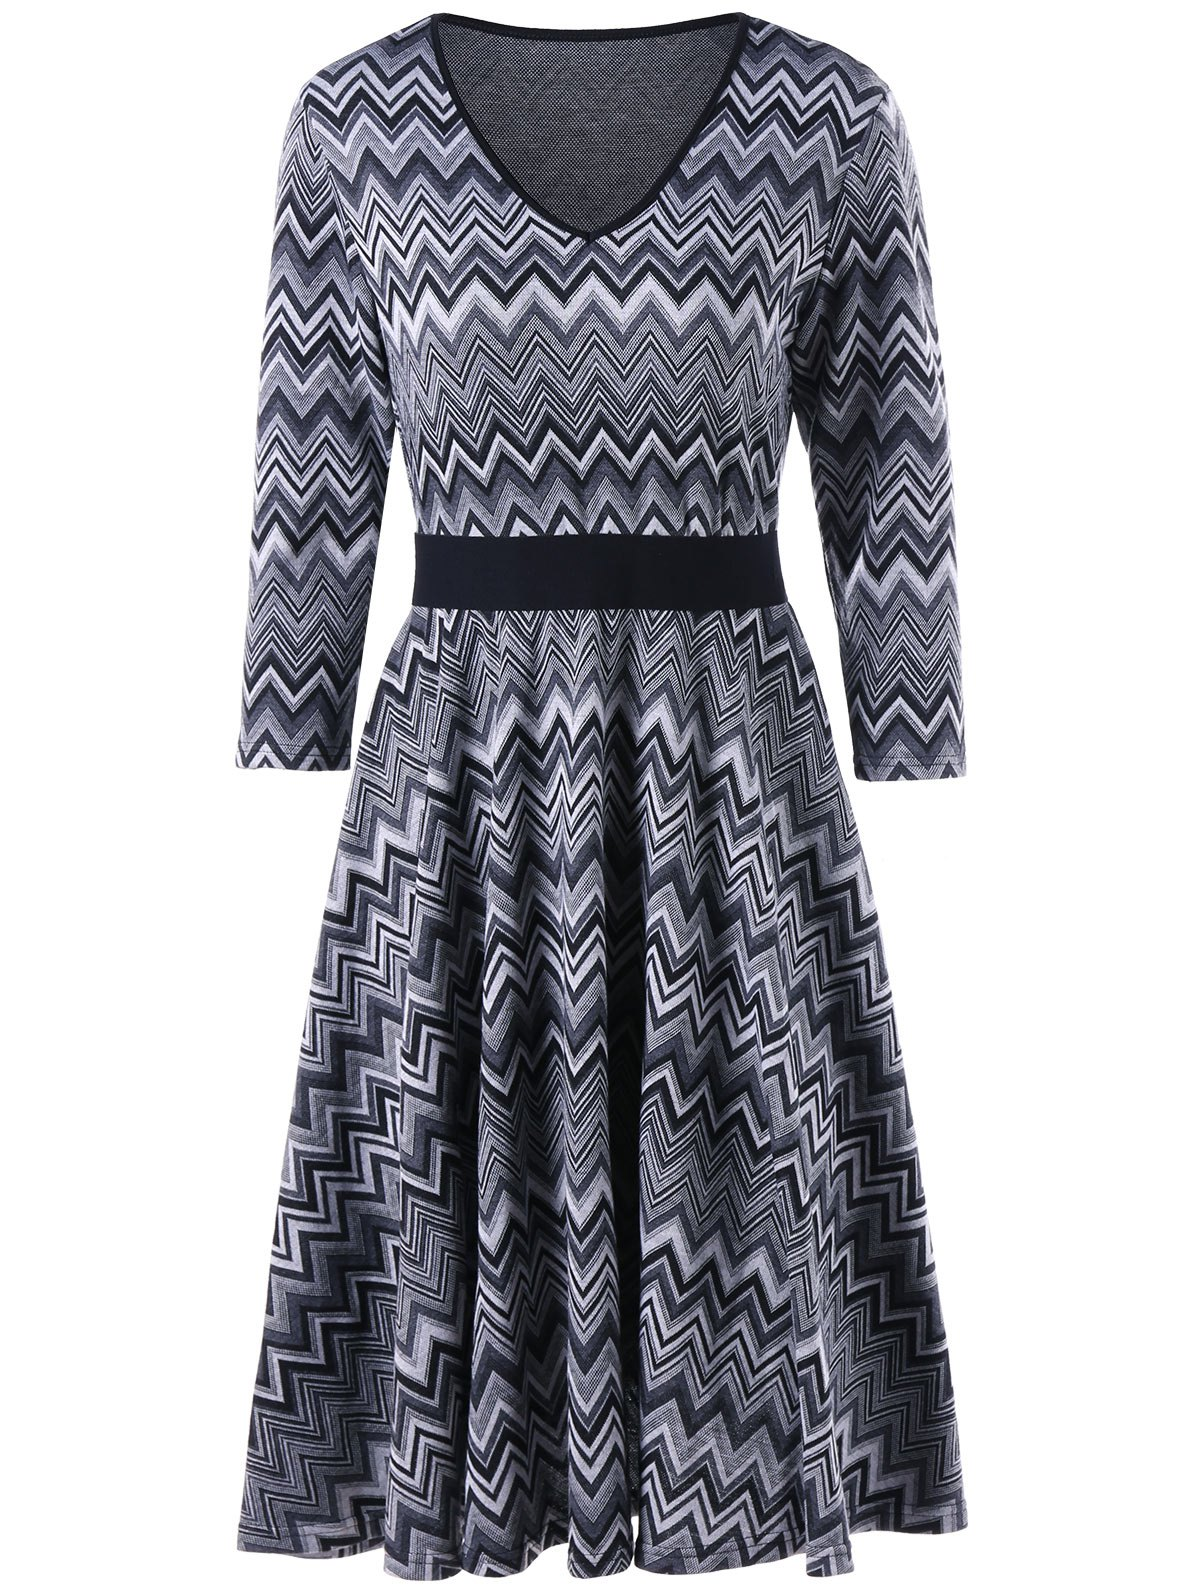 Fit and Flare Chevron Stripes Dress contrast cut and sew chevron full length dress